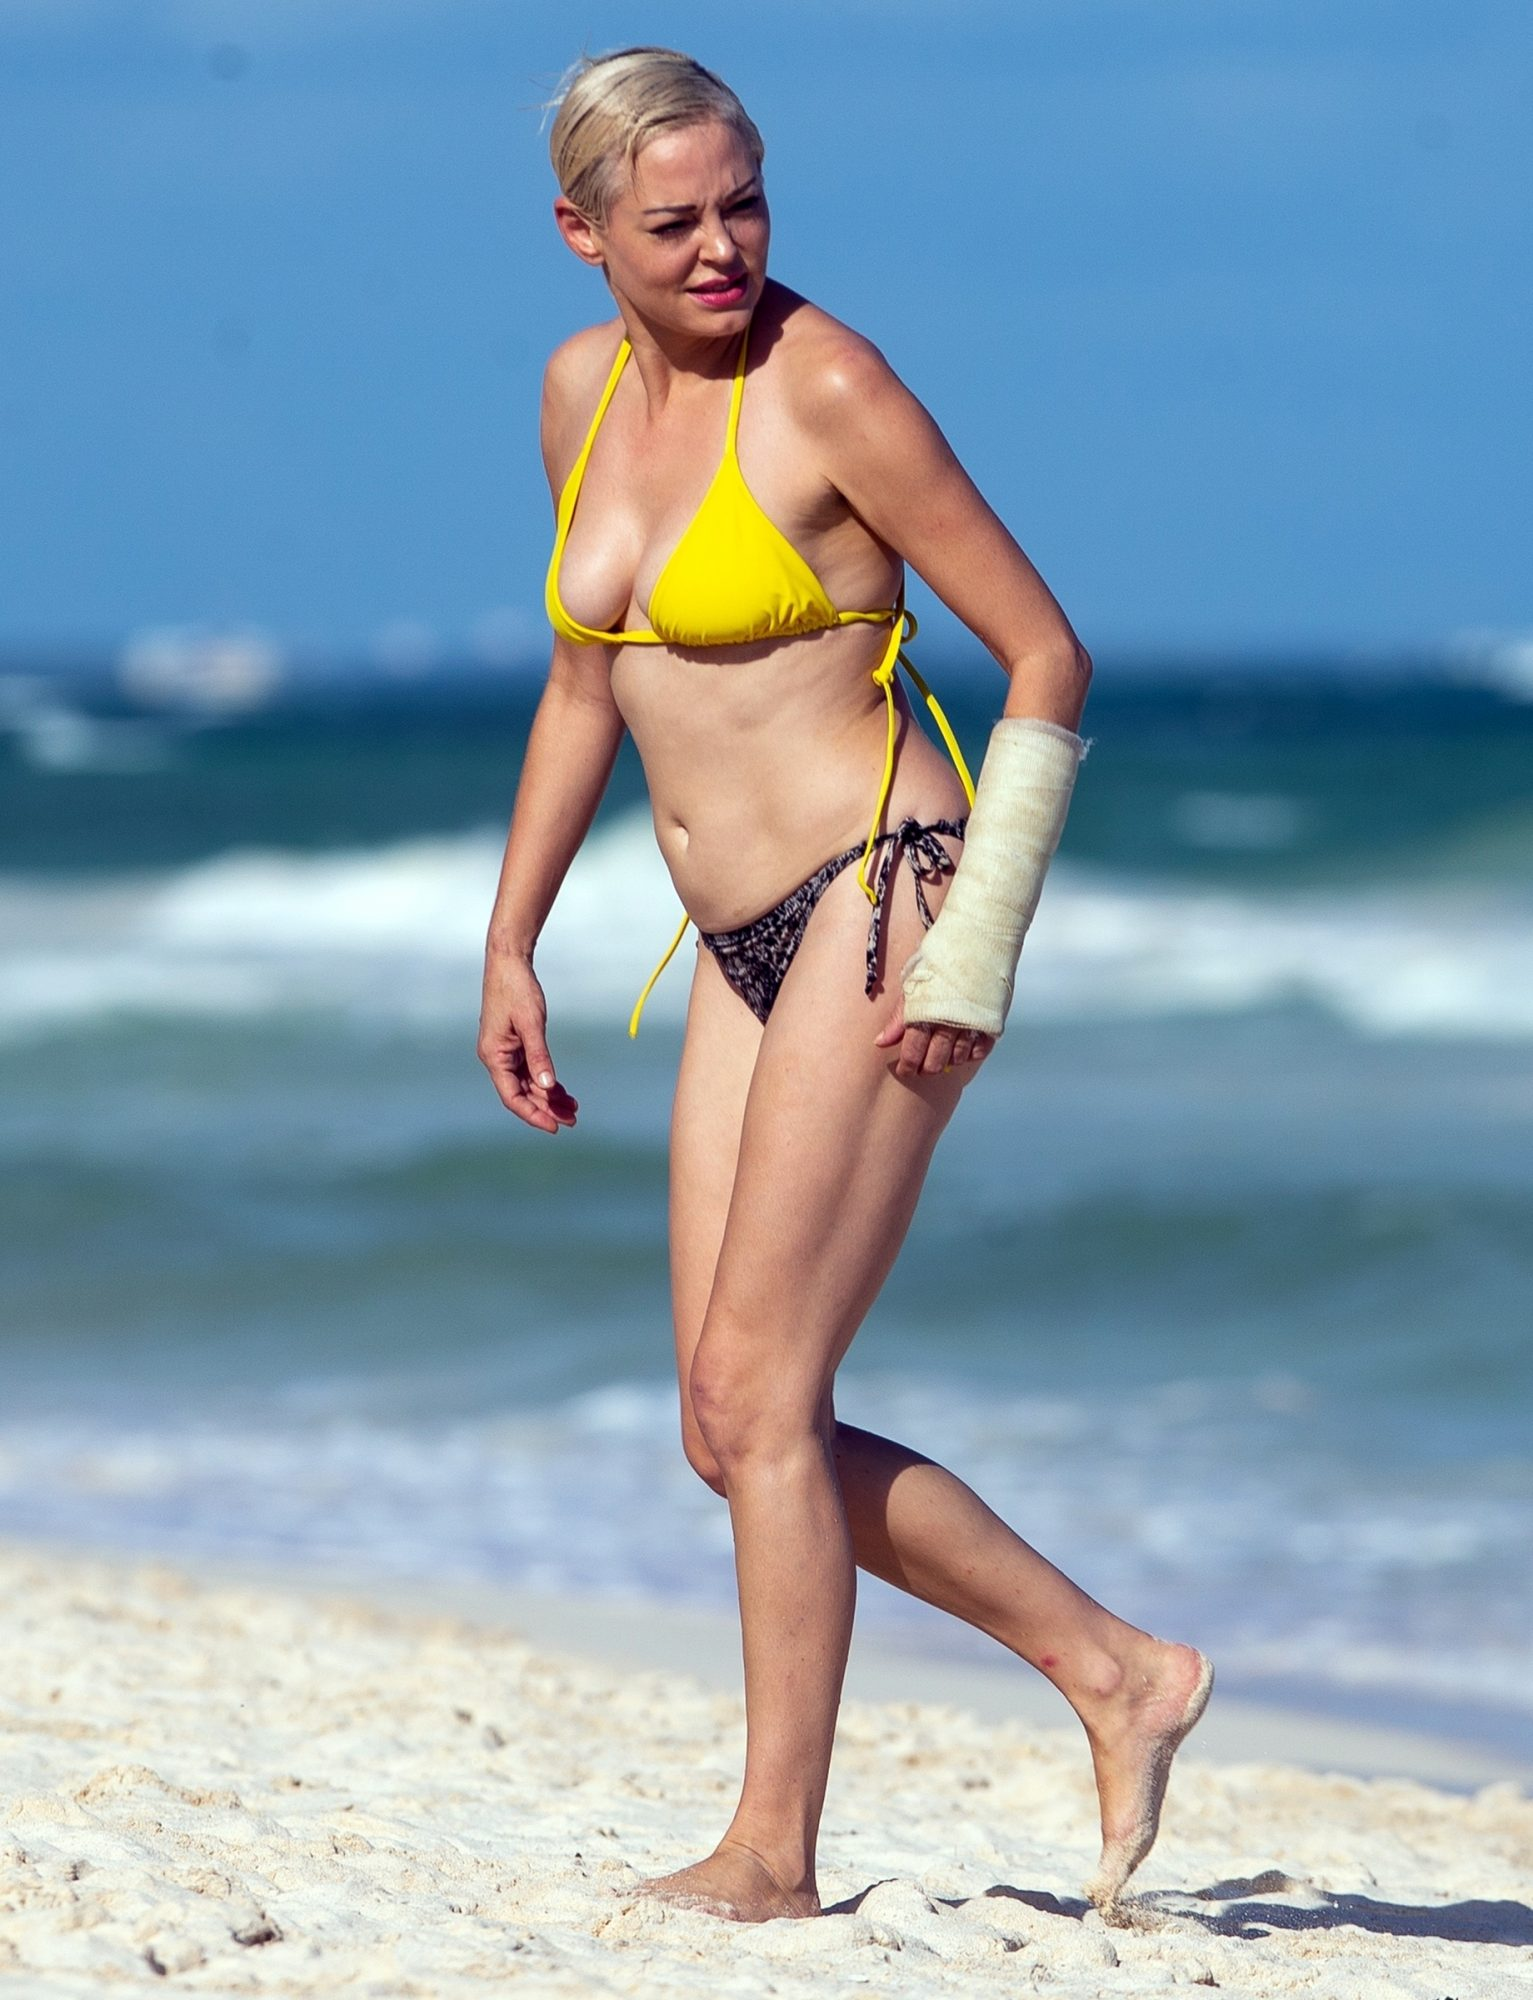 Bikini-clad Rose McGowan dotes on her pet pooch during a trip to Mexico beach